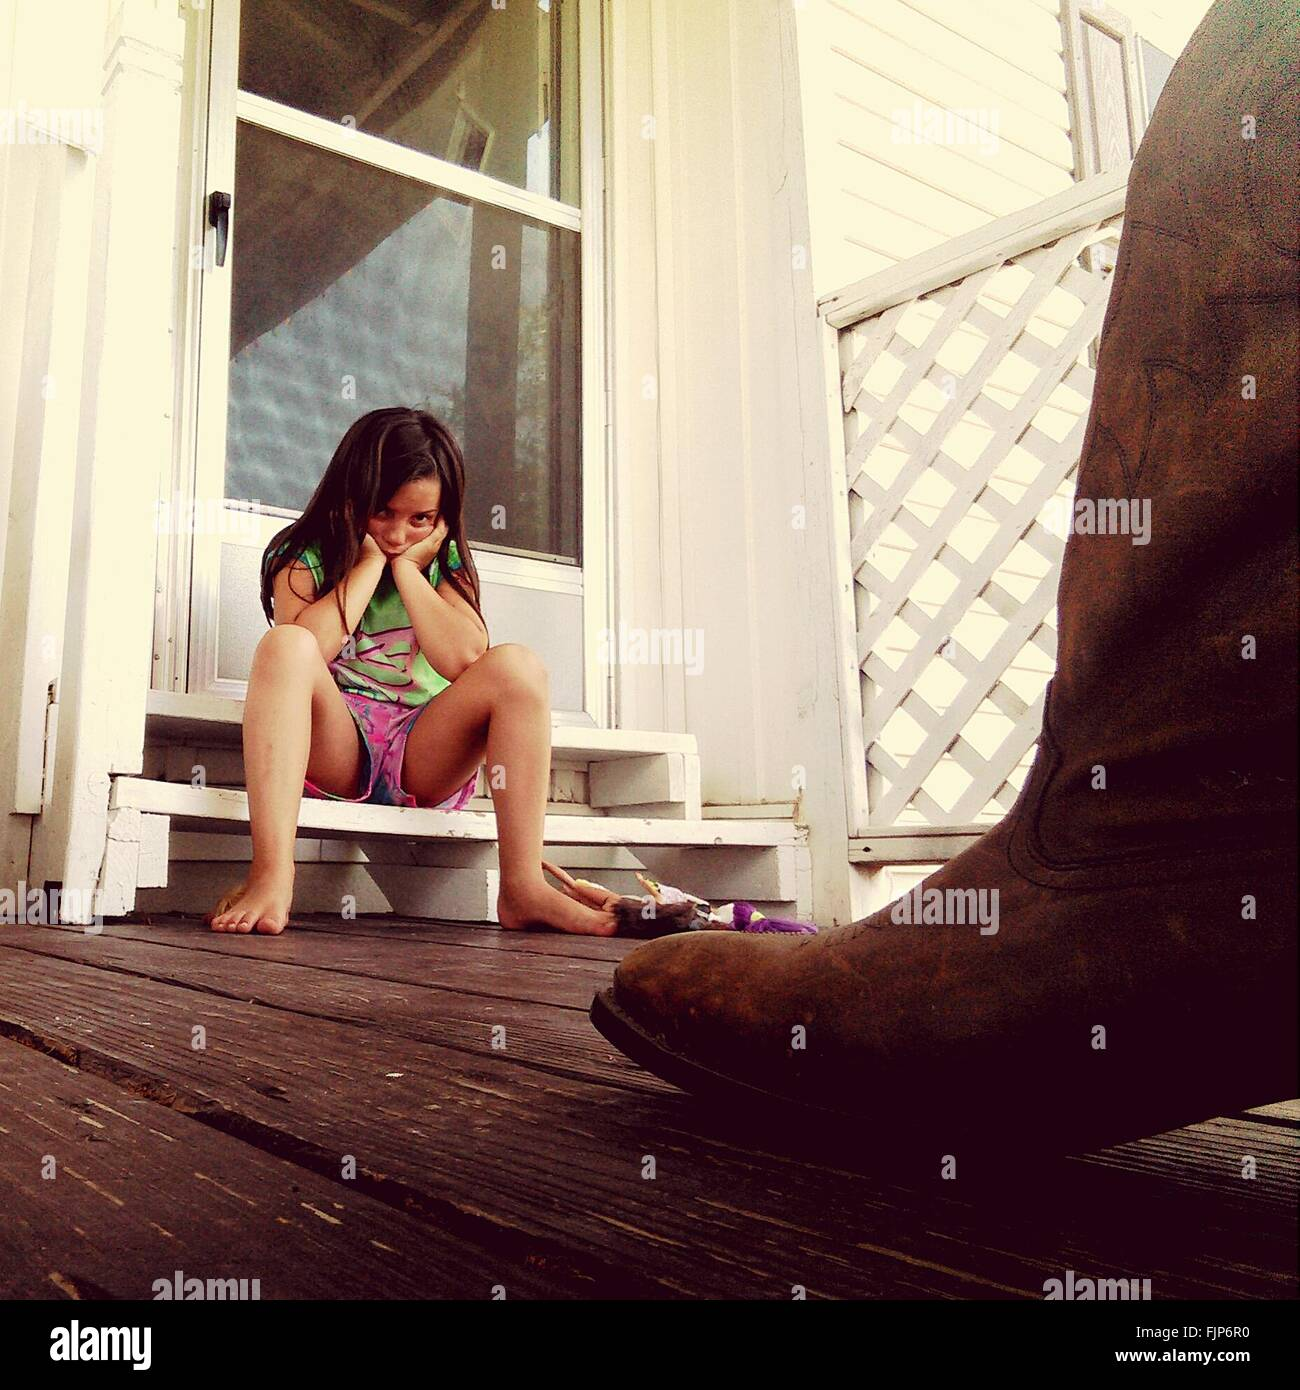 Low Angle View Of Girl Sitting On Steps - Stock Image